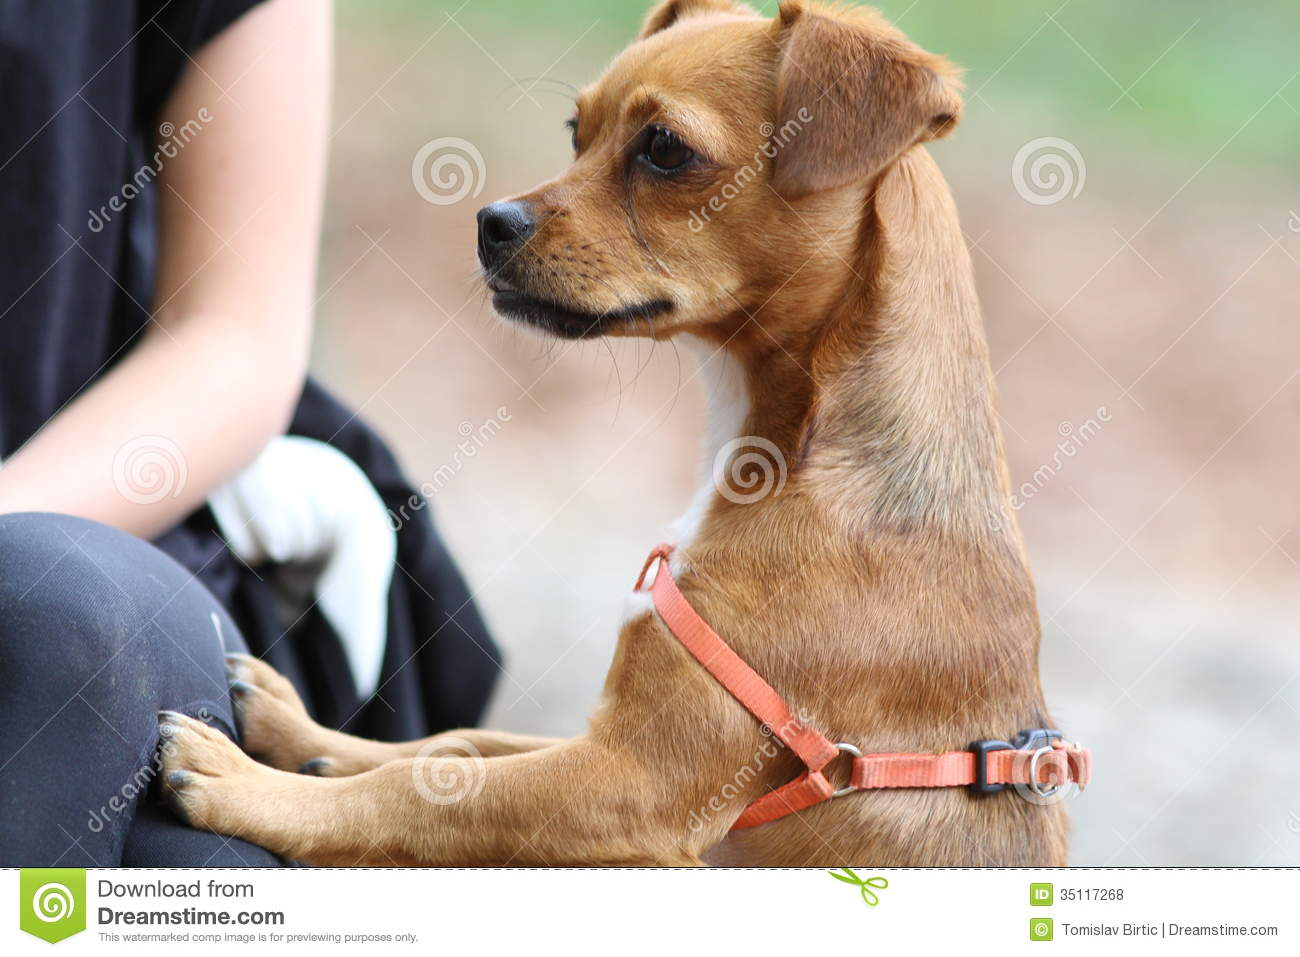 Little Dog Human Touch Contact Royalty Free Stock